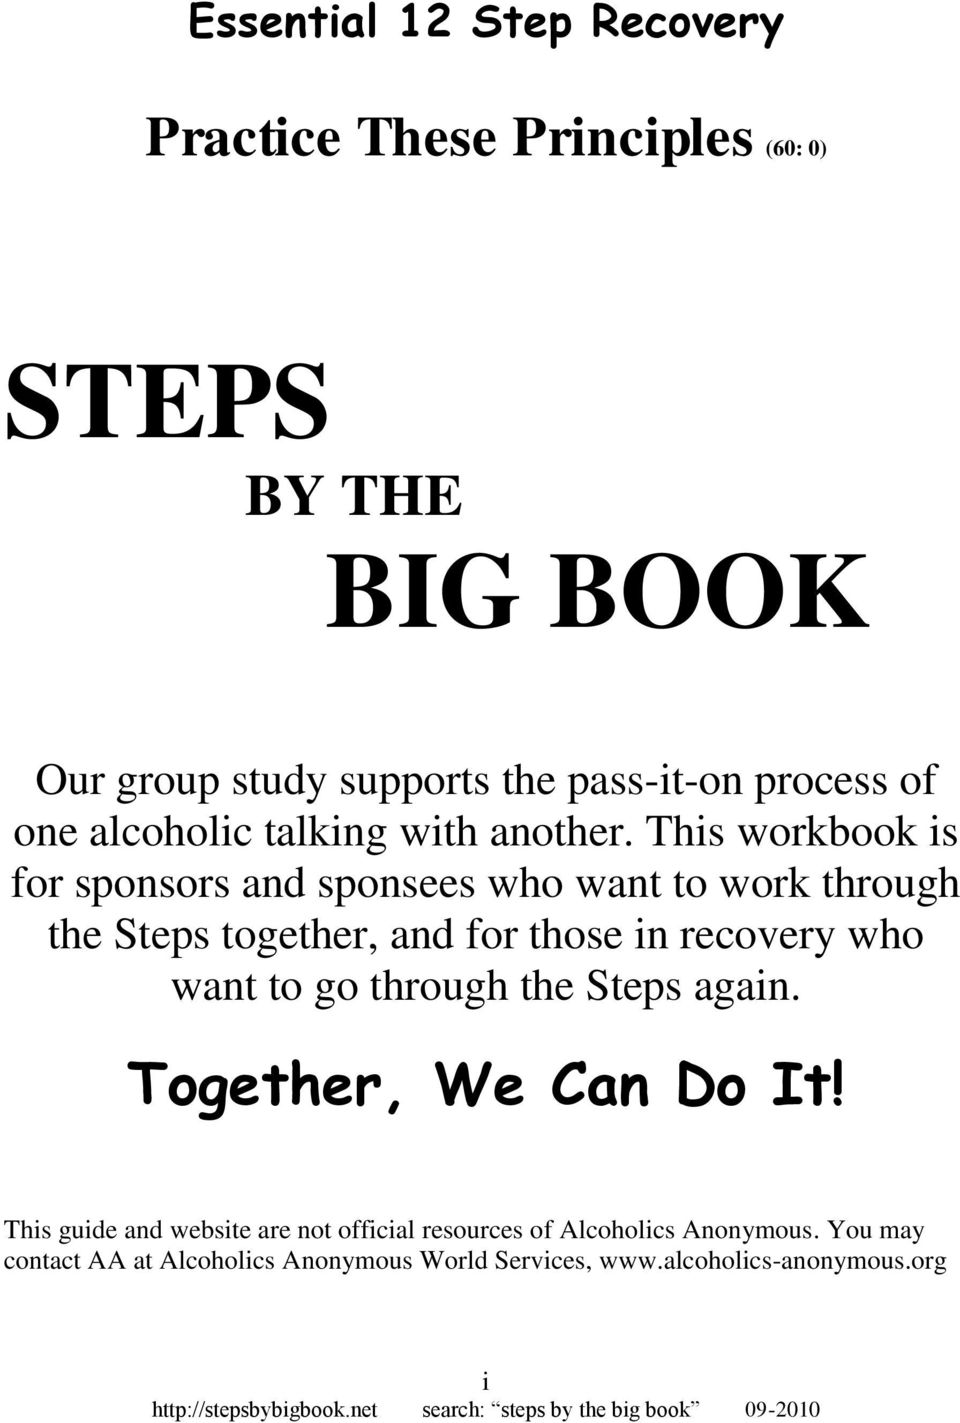 Essential 12 Step Recovery STEPS BY THE BIG BOOK. We are building ...